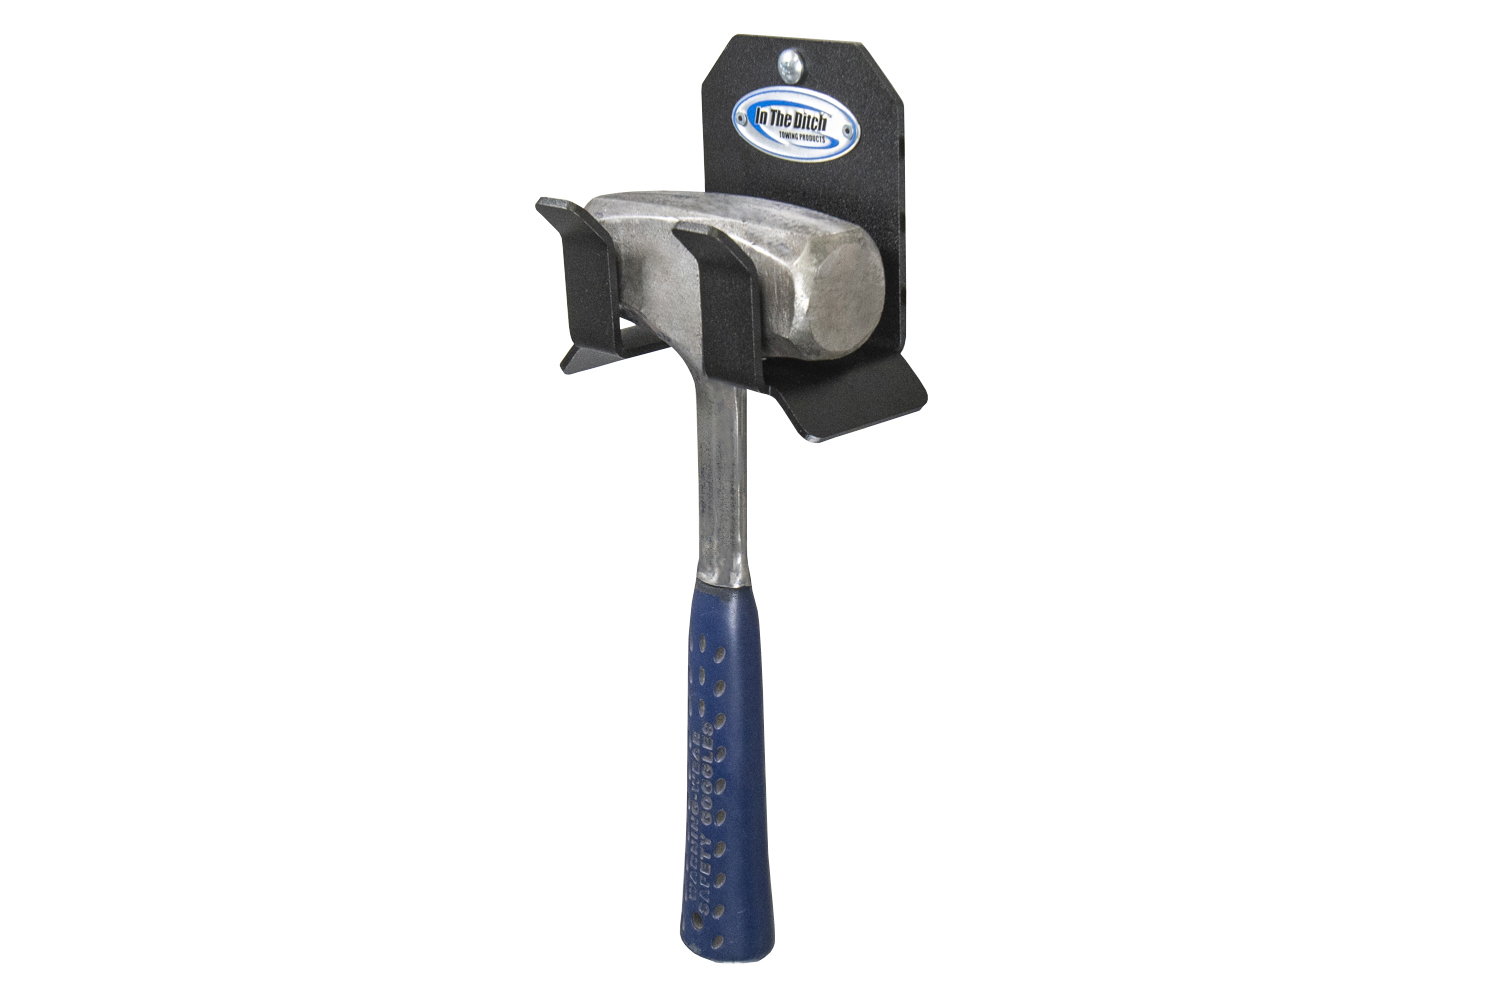 011 In The Ditch Garage Cord Hammer Hanger Small ITD1886